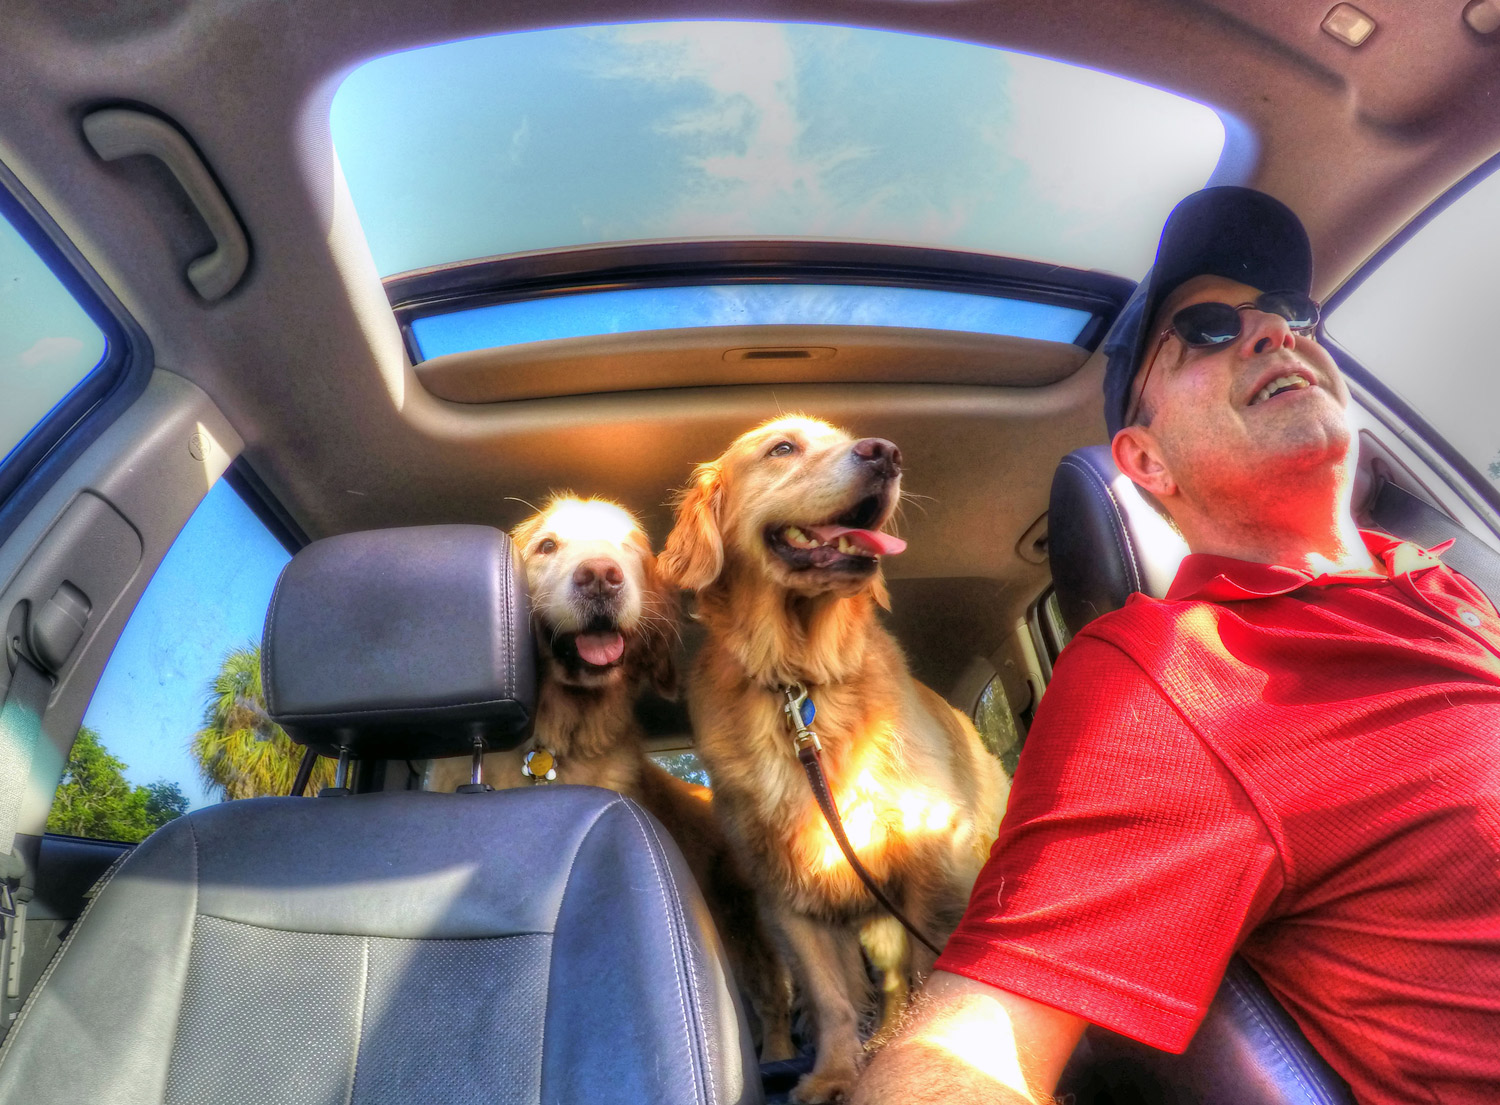 r-scott-duncan-photography-logan-julia-car-ride.jpg